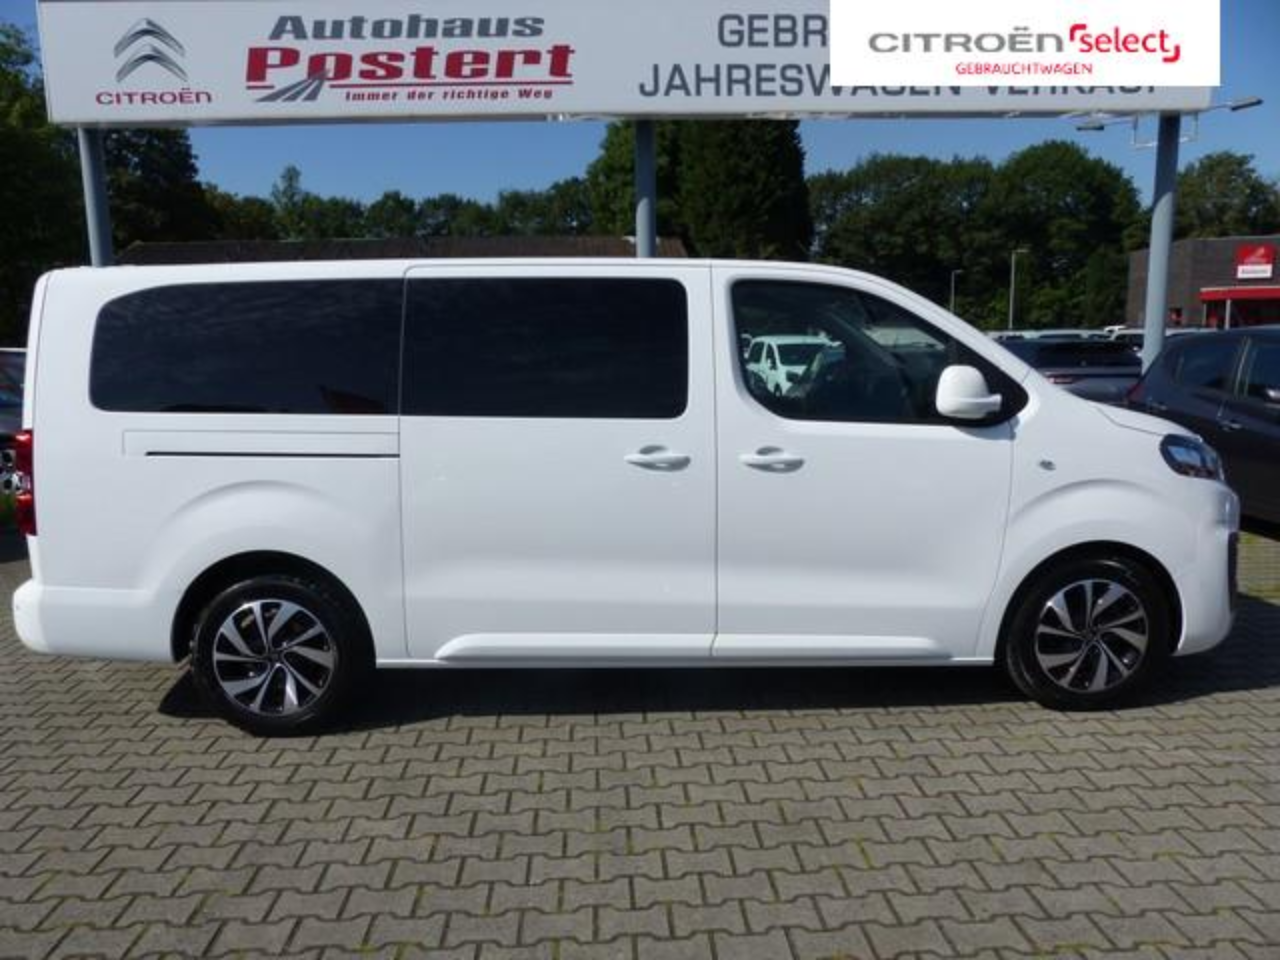 Citroën Spacetourer 2.0BlueHDi 180XL Business S&S(EU 6d-T) 9-Sitzer